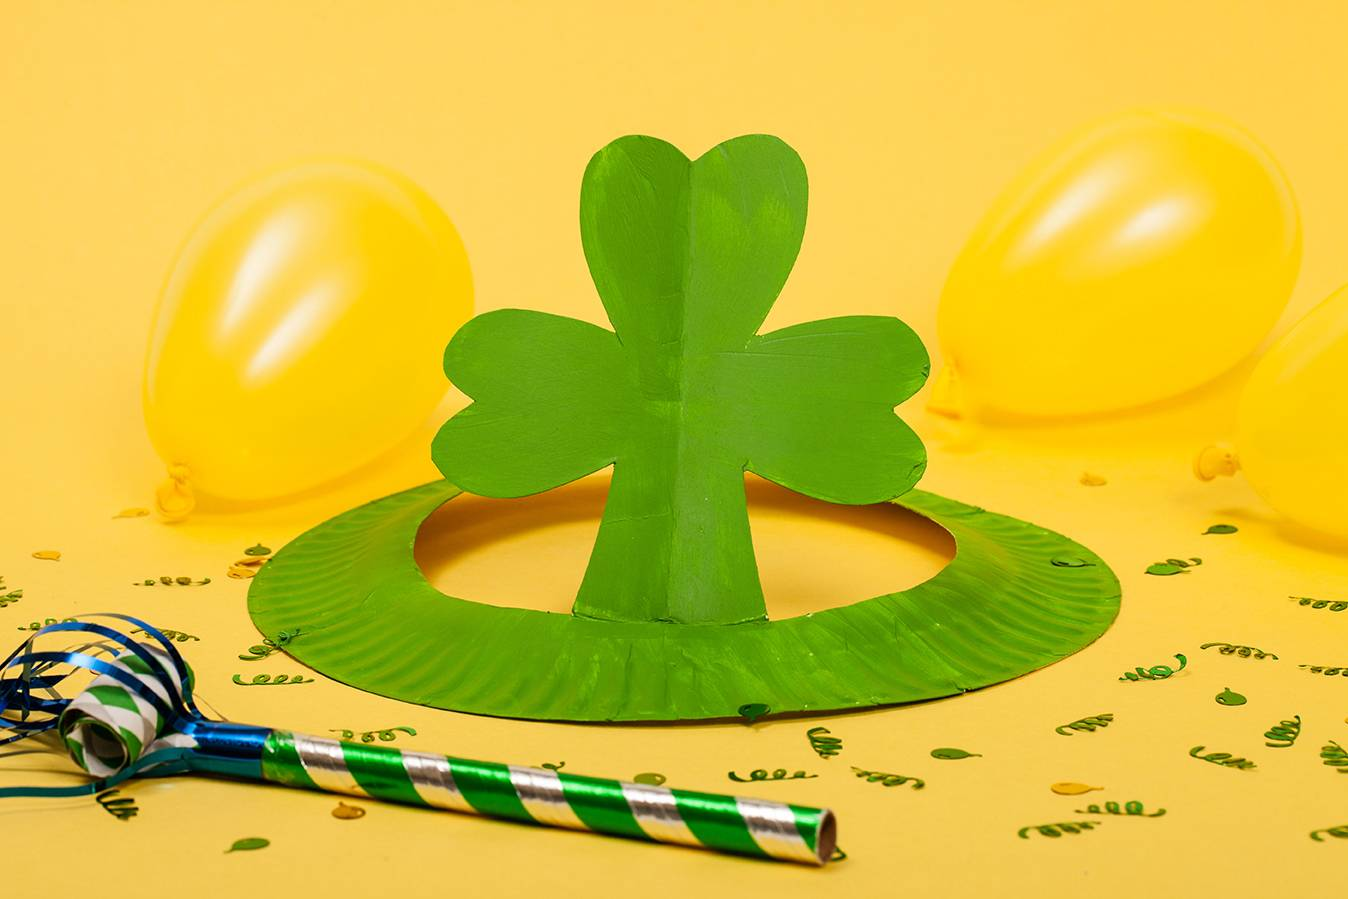 From leprechaun beards to shamrock hats, a few fast crafts can crank up the fun for a St. Patrick's Day parade or party.